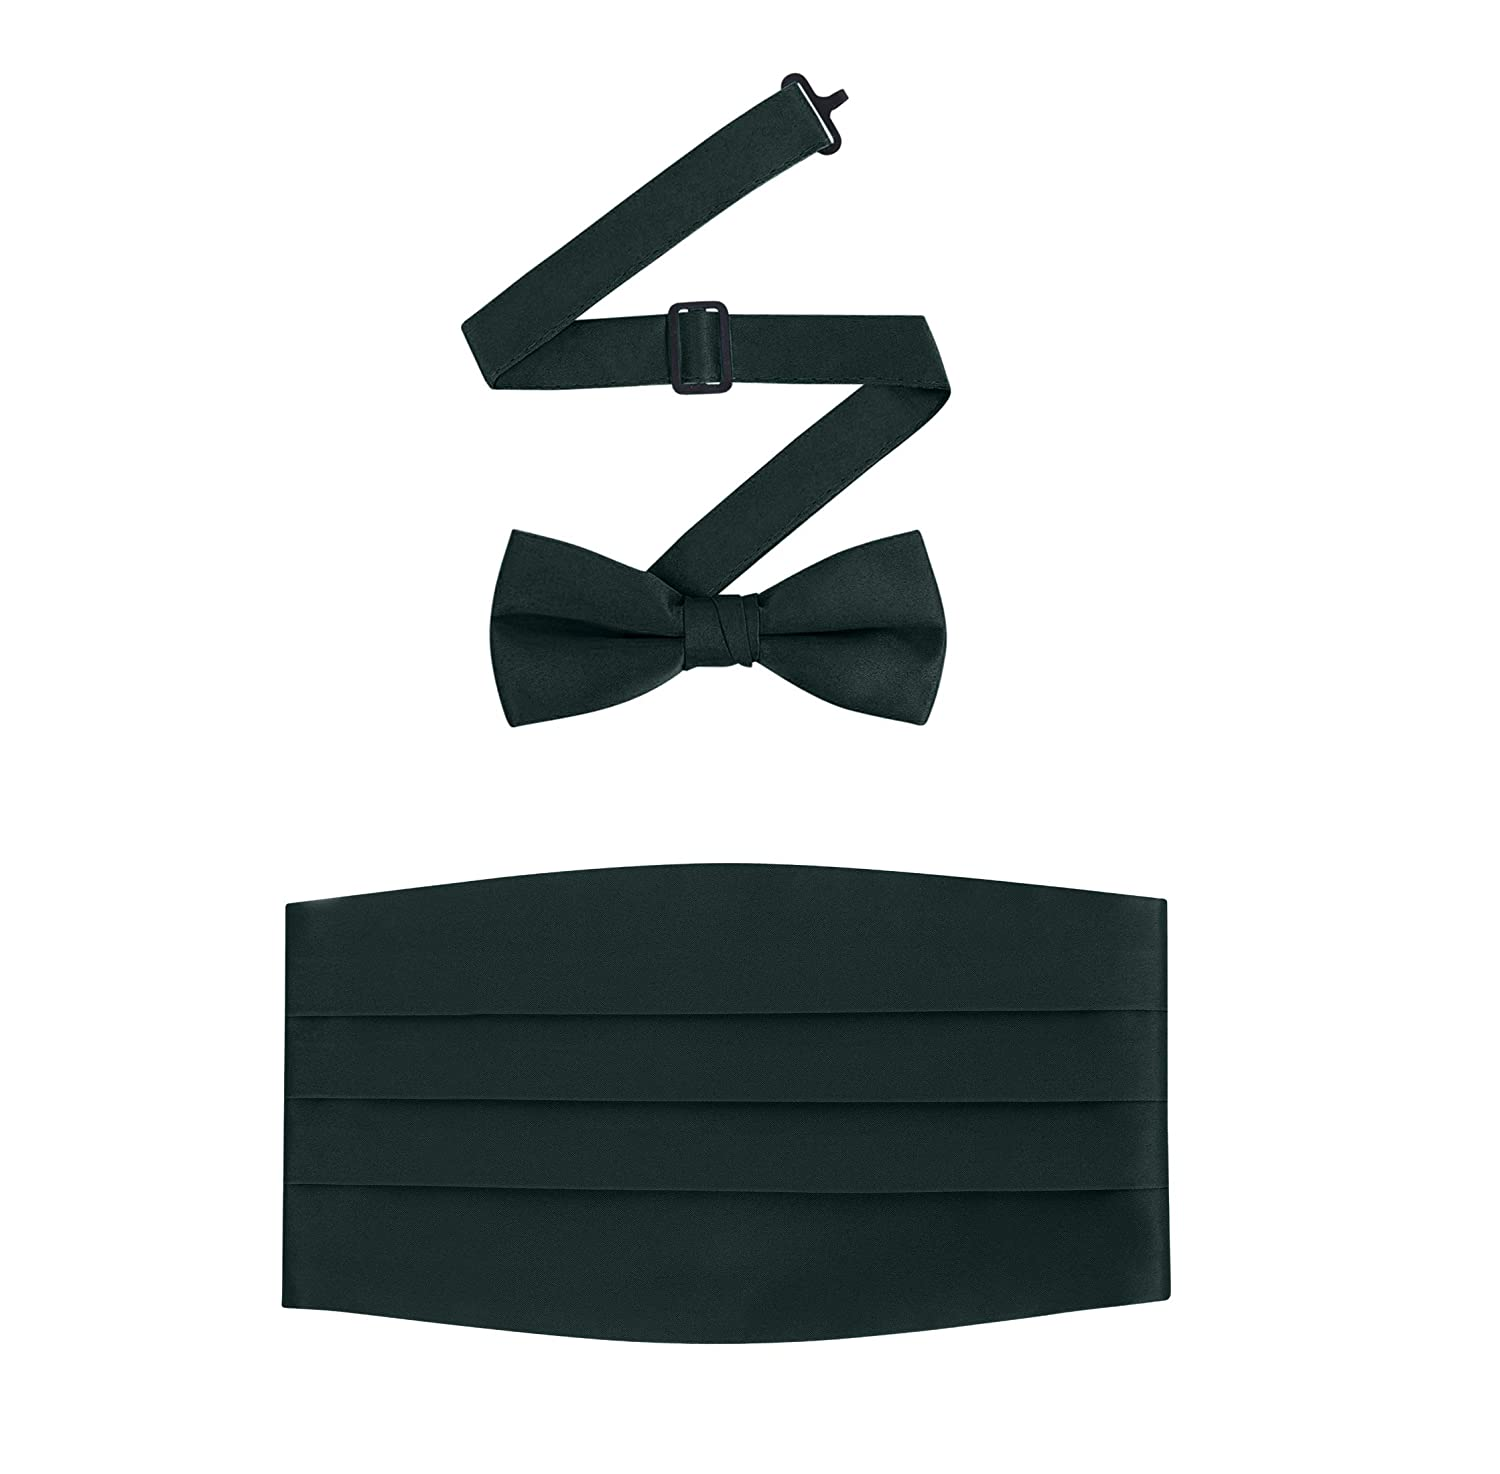 Men's Formal Satin Bowtie and Cummerbund Set - Many Colors Available By S.H Churchill 105CT-01